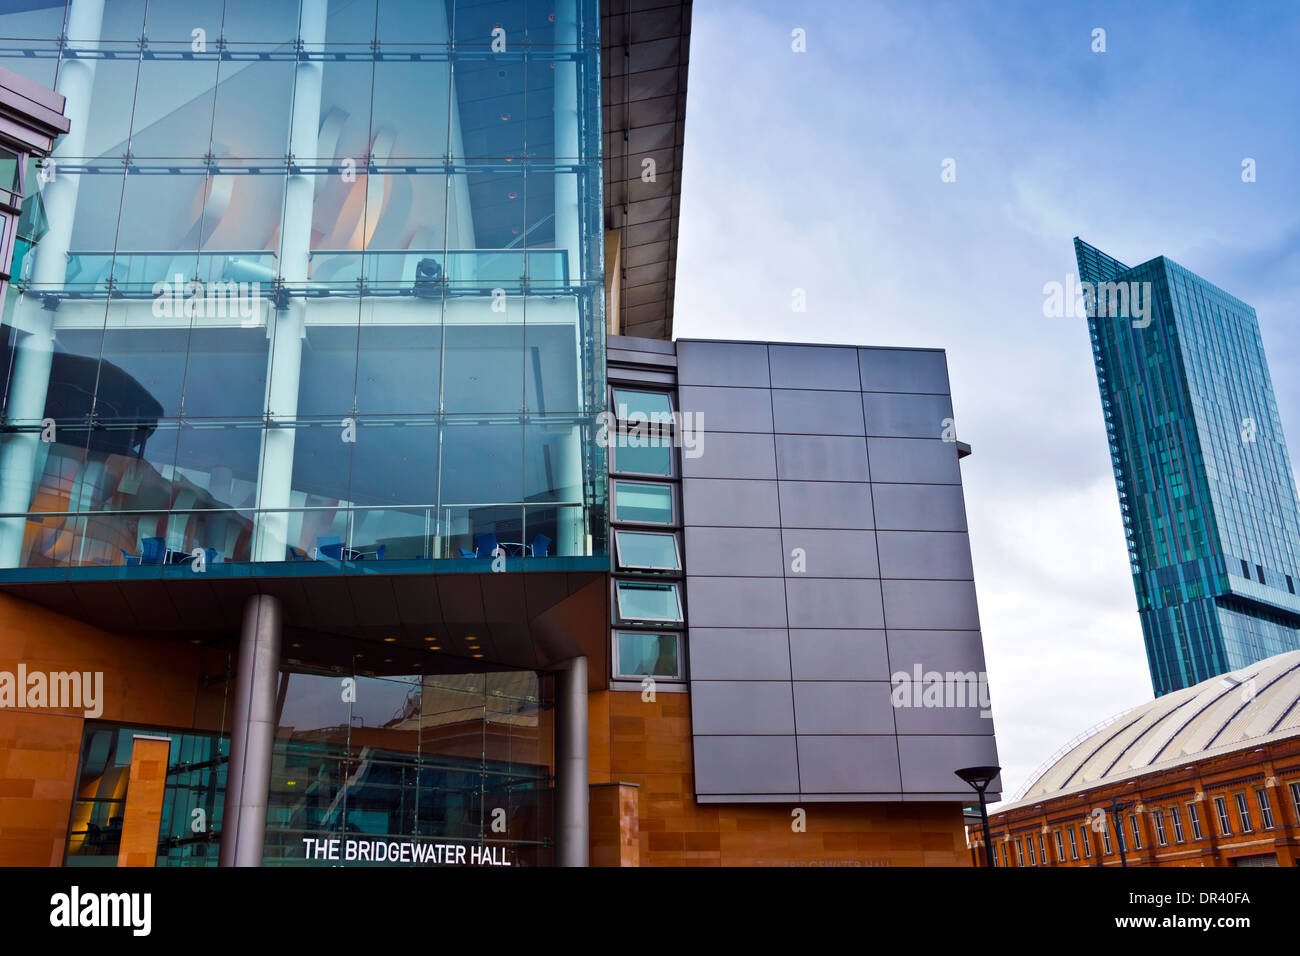 Cityscape at the Manchester city centre with the Bridgewater Hall, Beetham Tower and Gmex. - Stock Image